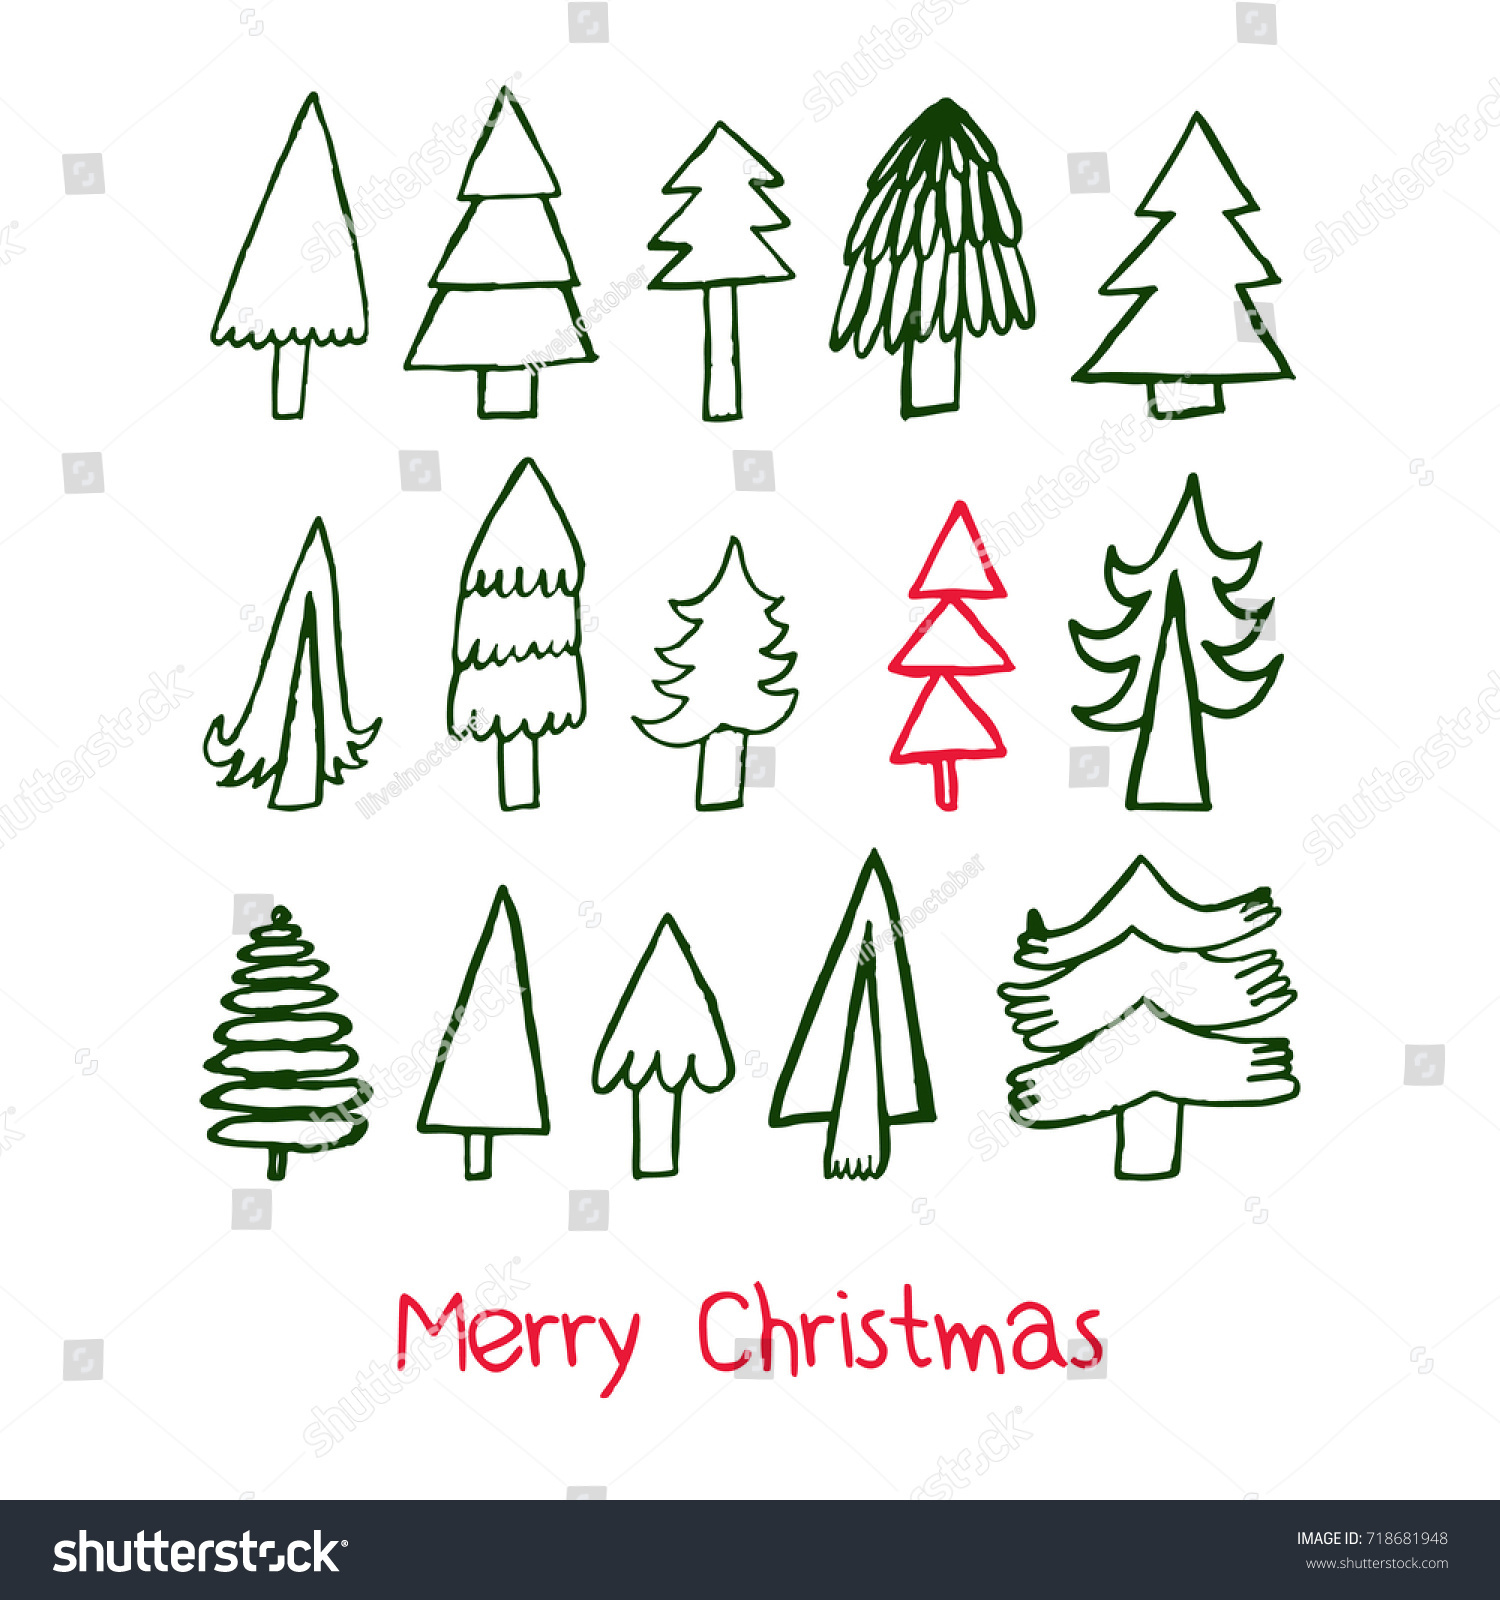 simple christmas images